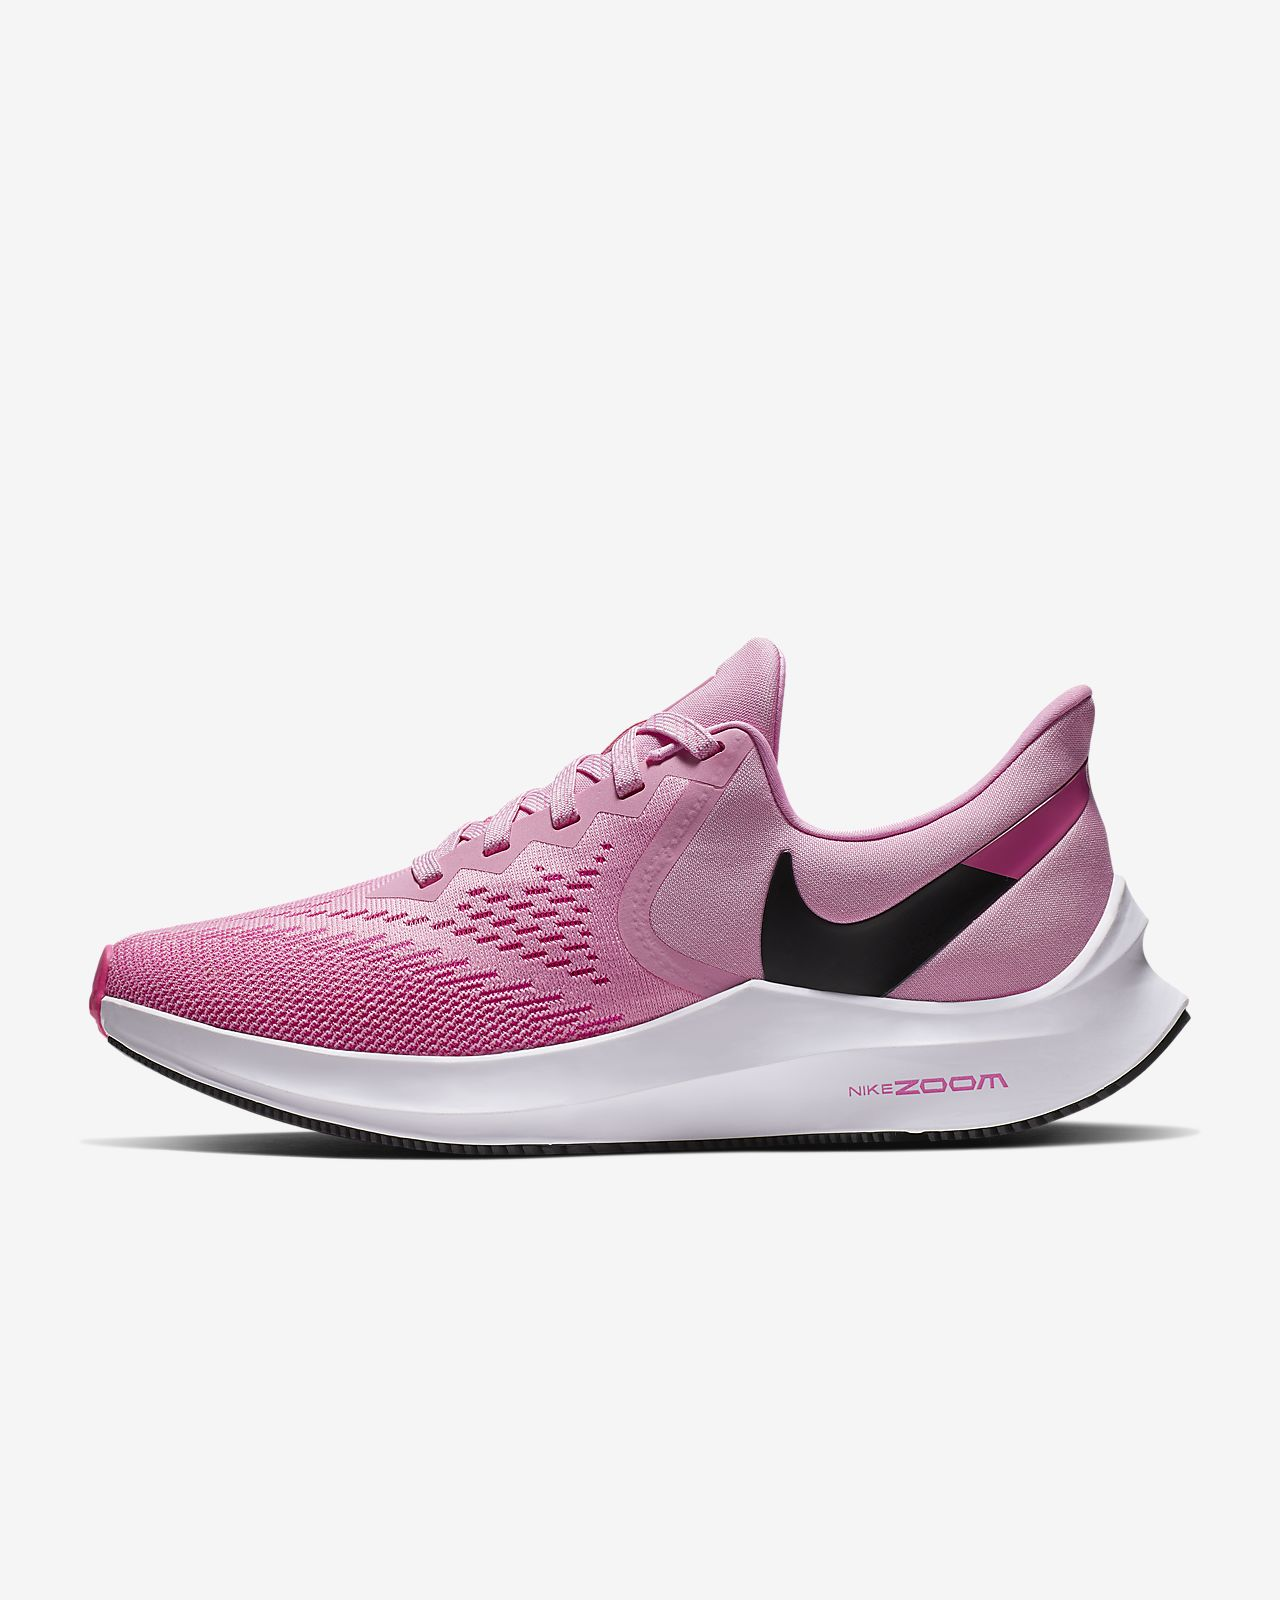 new style 0d611 48d79 Nike Air Zoom Winflo 6 Women's Running Shoe